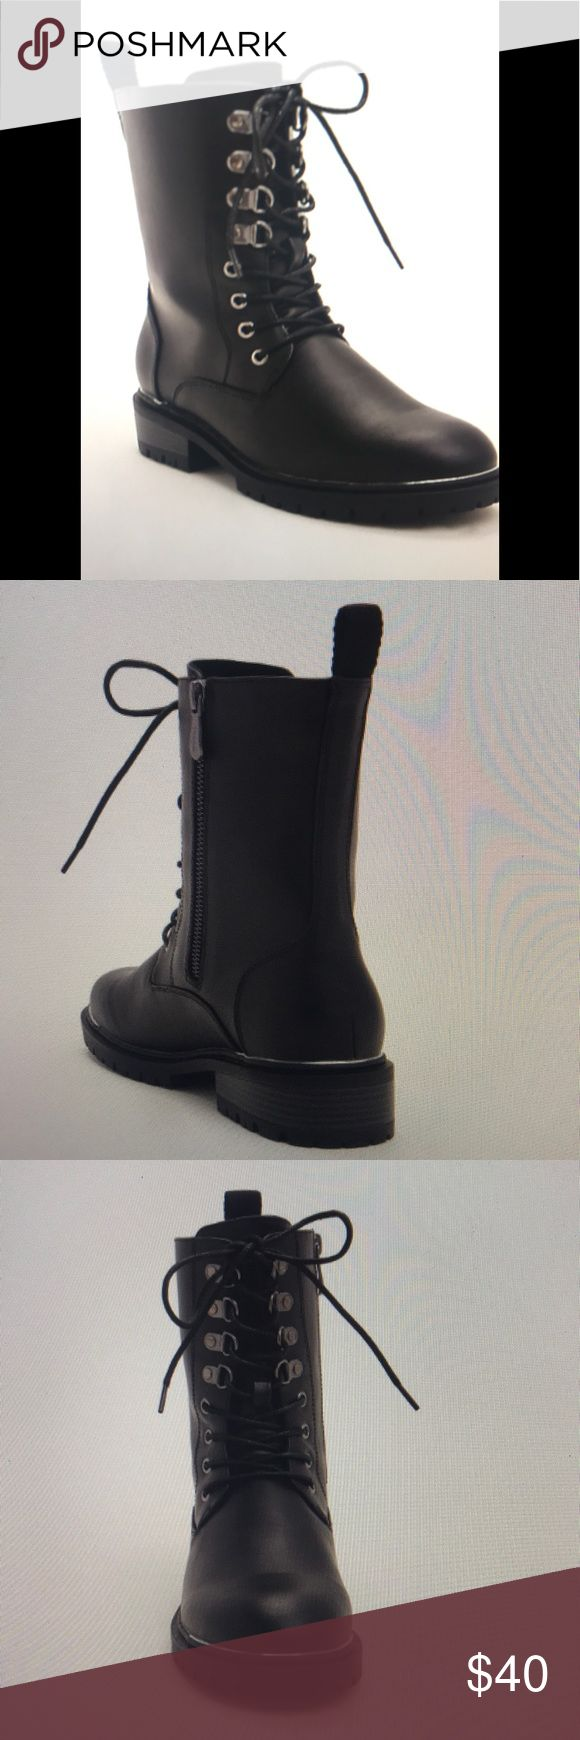 Faux leather metal toe combo boots NWT in box Adjustable zip side allows you to throw these on quick and adds that edge to your wardrobe. Metal details add character and shine. True wide width!! Super comfy and supportive. torrid Shoes Combat & Moto Boots